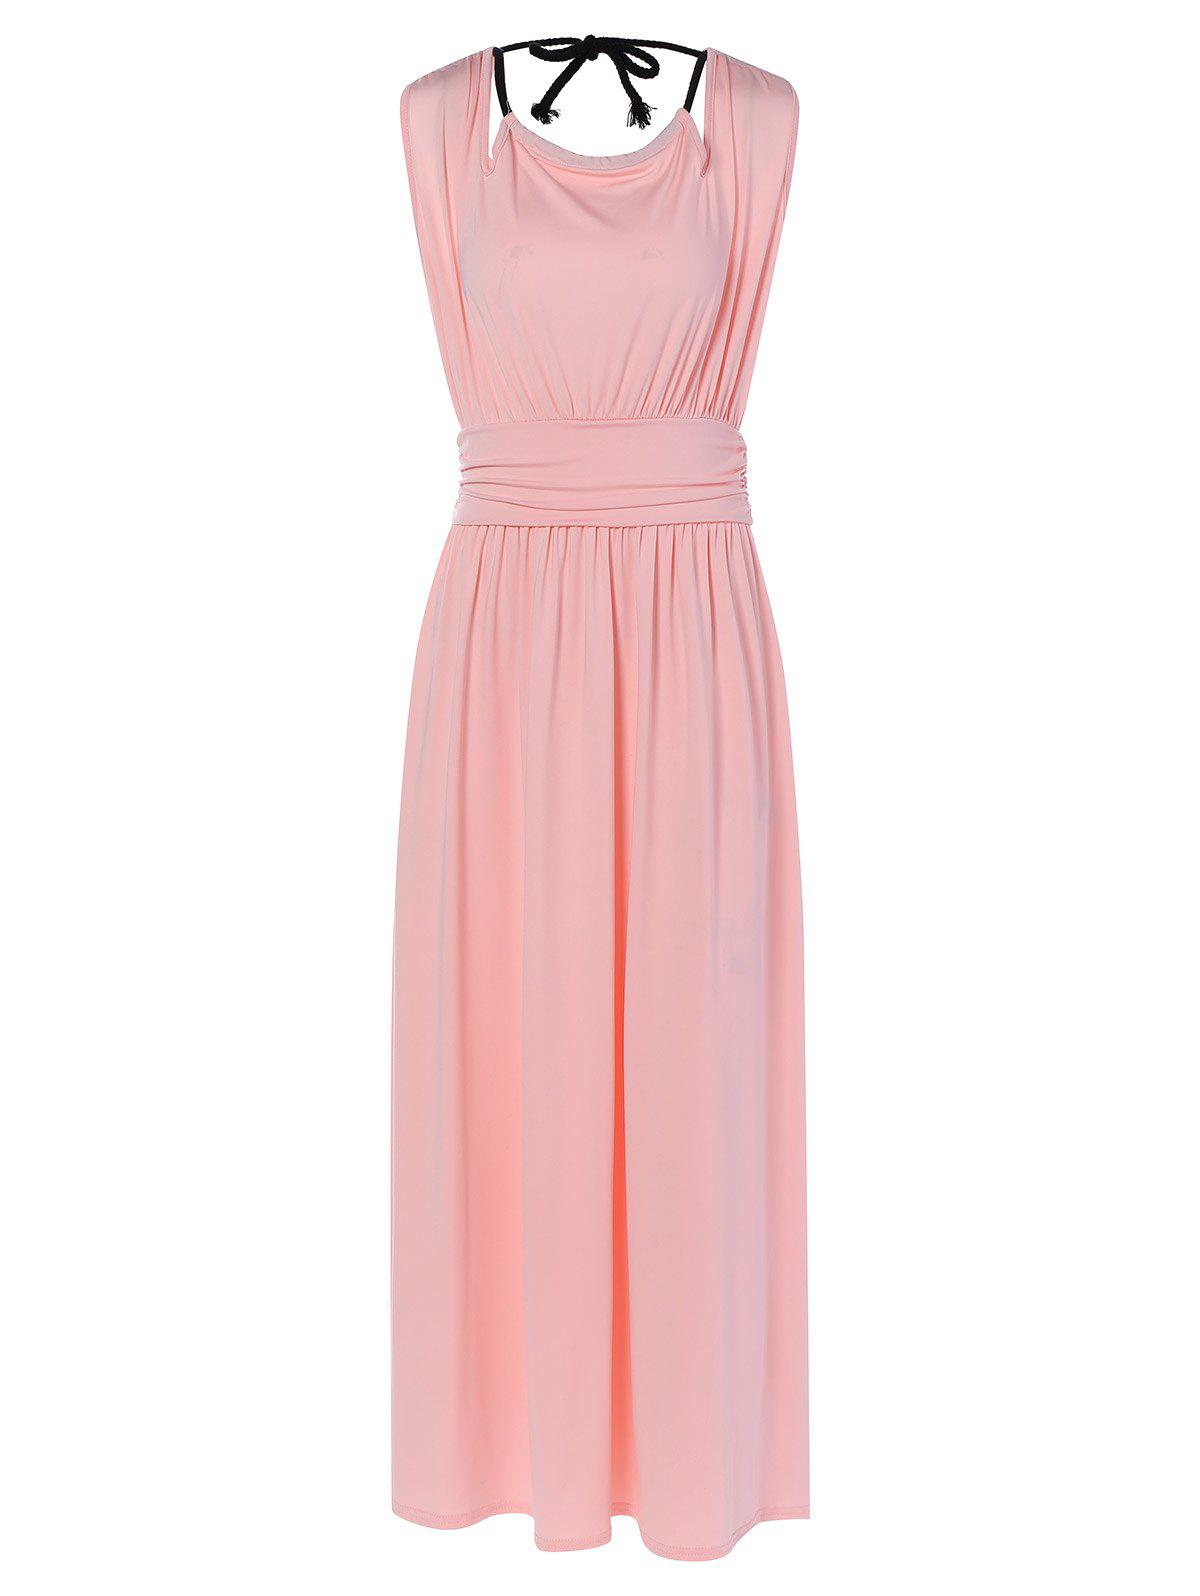 Ruched Hollow Out Maxi DressWomen<br><br><br>Size: M<br>Color: SHALLOW PINK